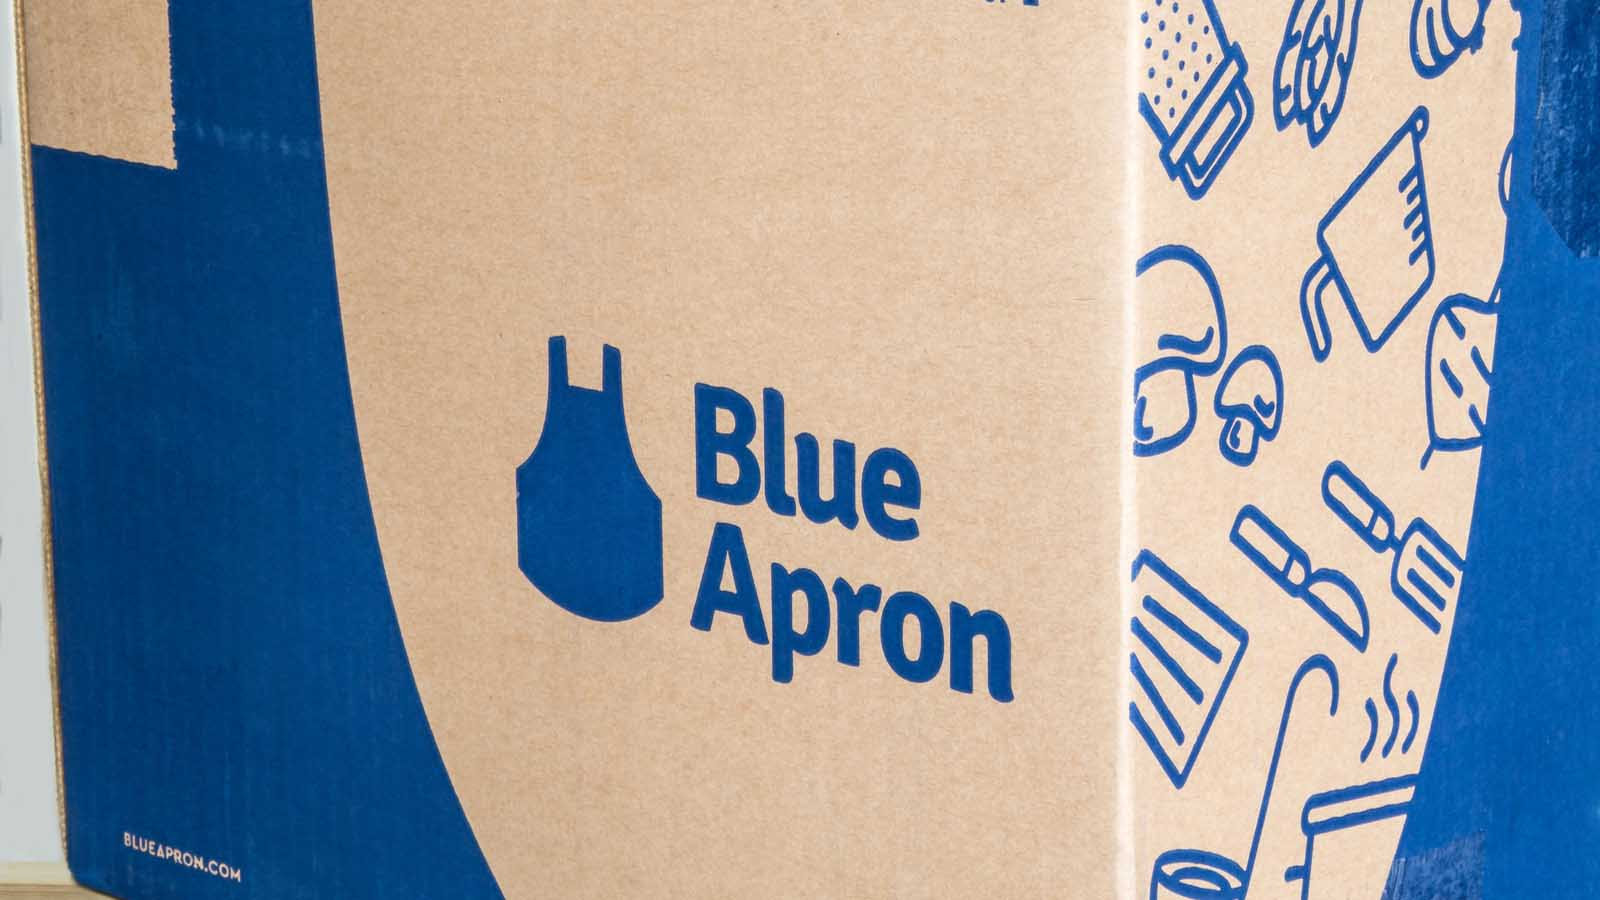 Why Blue Apron (APRN) Stock Is Still in Trouble at This